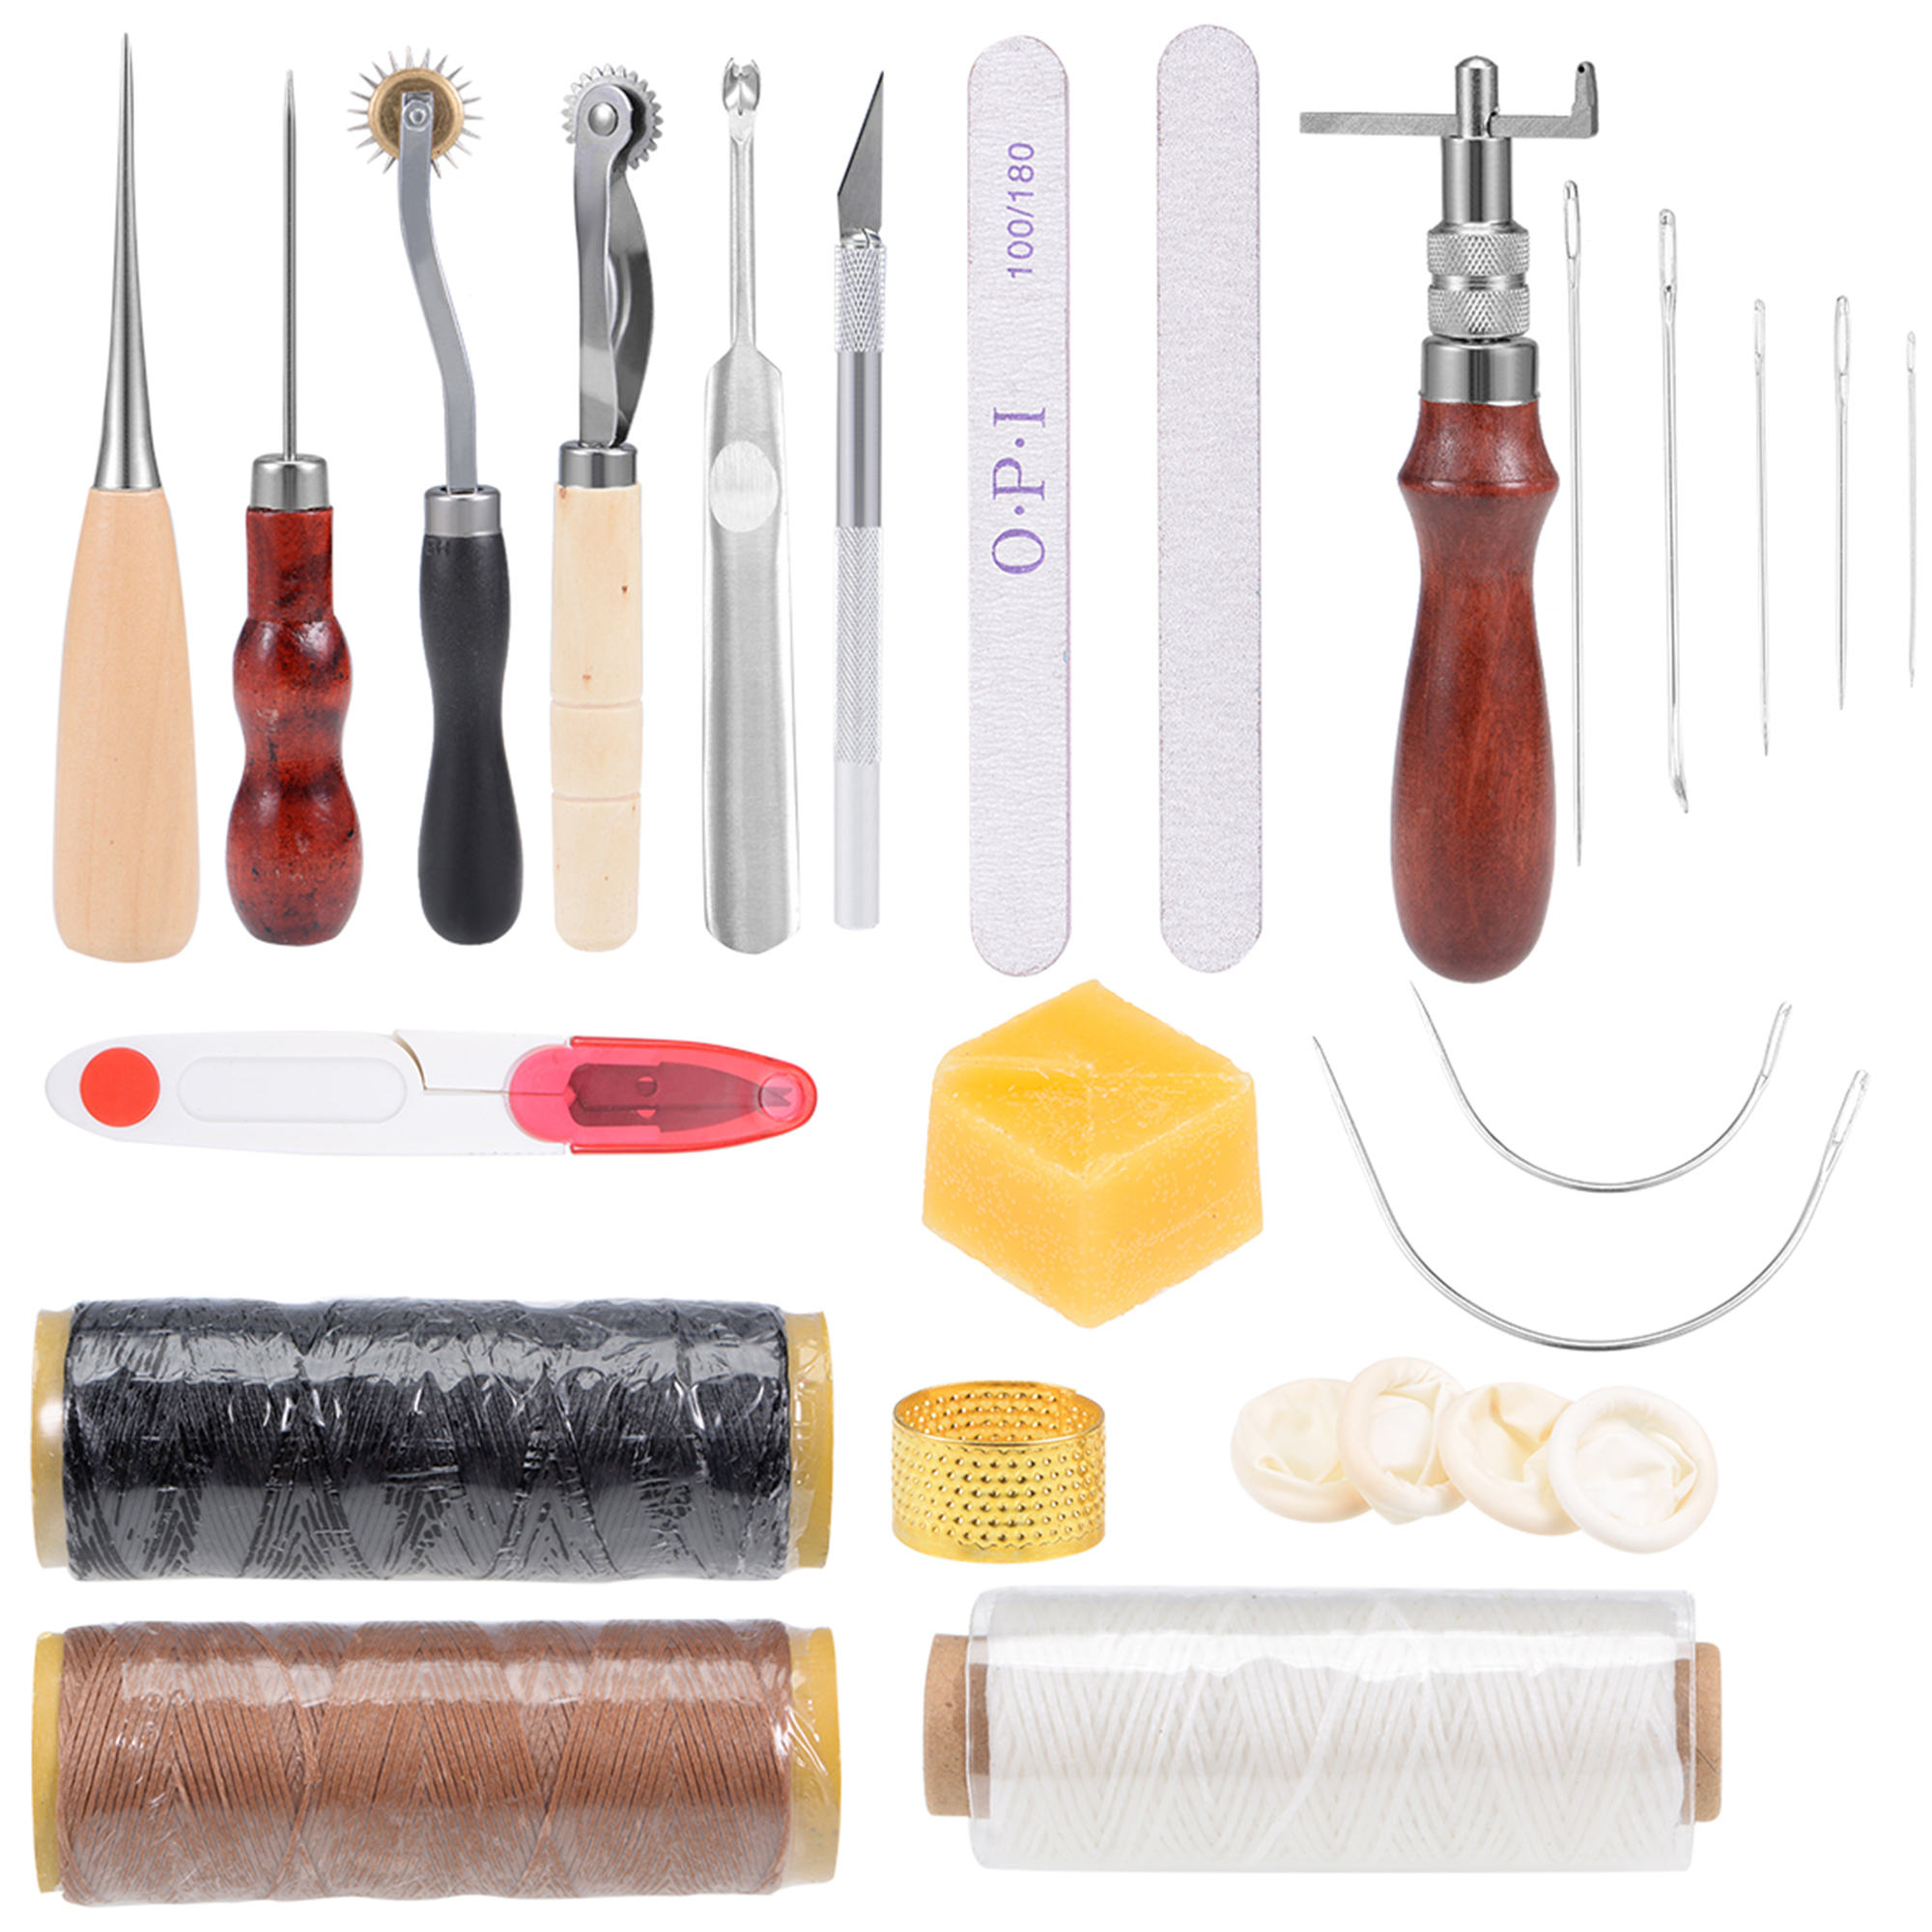 Craft Tool 18PCS Leather Sewing Tools Kits Leather DIY Hand Stitching Tools